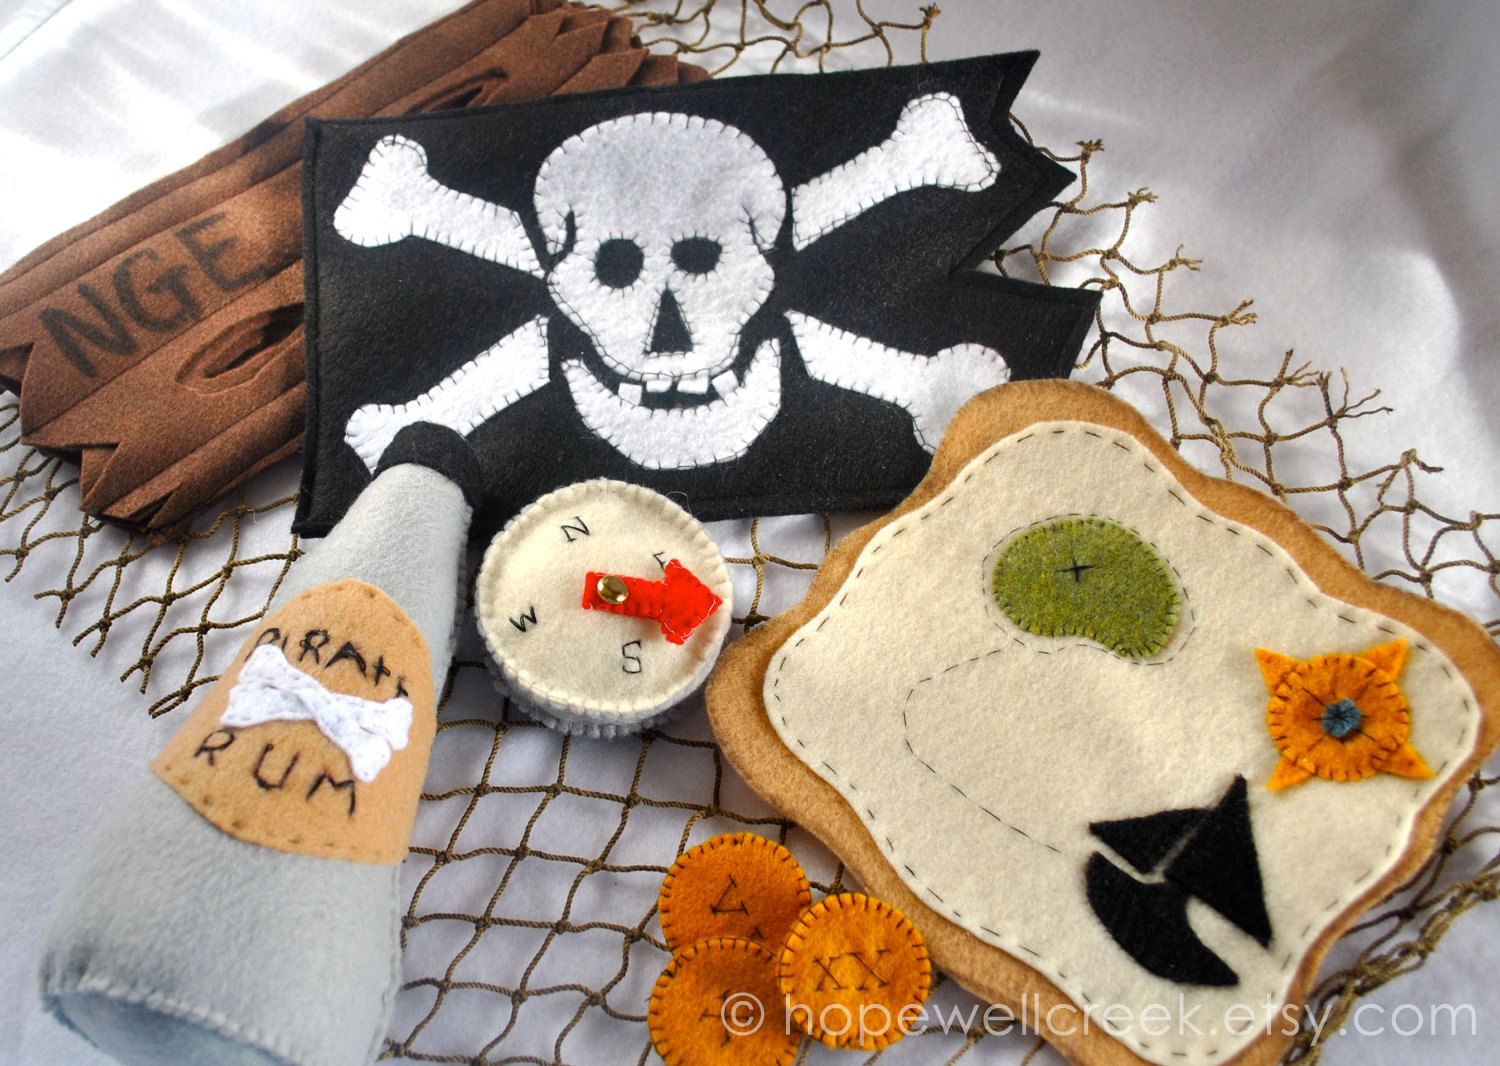 Talk Like a Pirate Day: Avast, me hearties, it's time for the cutest pirate treasures for kids!